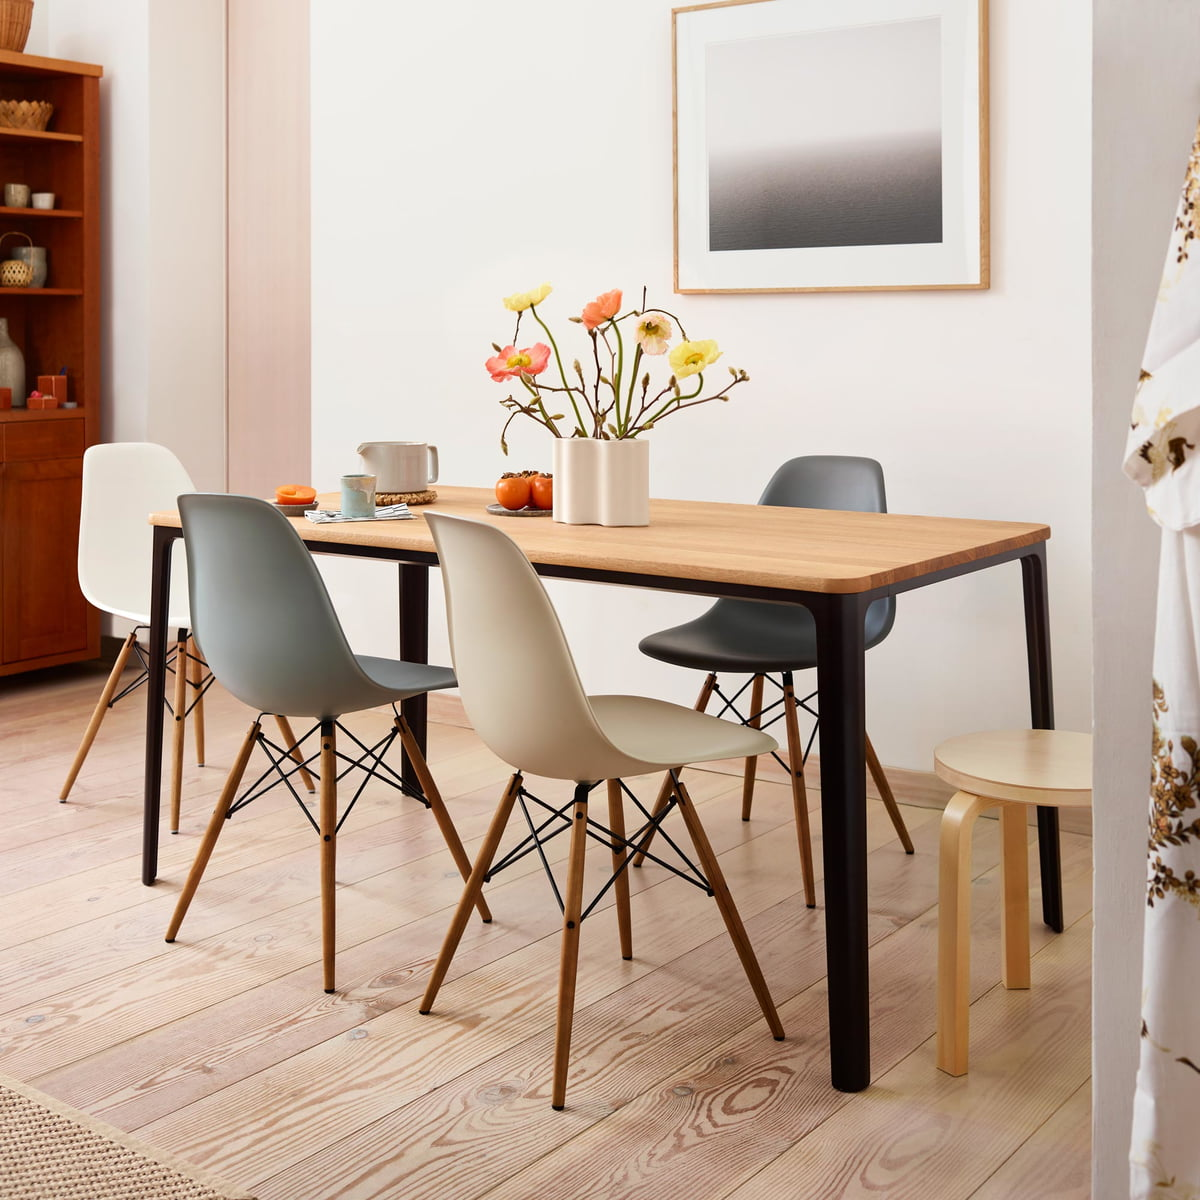 Strange Vitra Promotion Set Eames Plastic Side Chair Dsw Set Of 4 Maple Yellowish White Felt Glider White Ocoug Best Dining Table And Chair Ideas Images Ocougorg